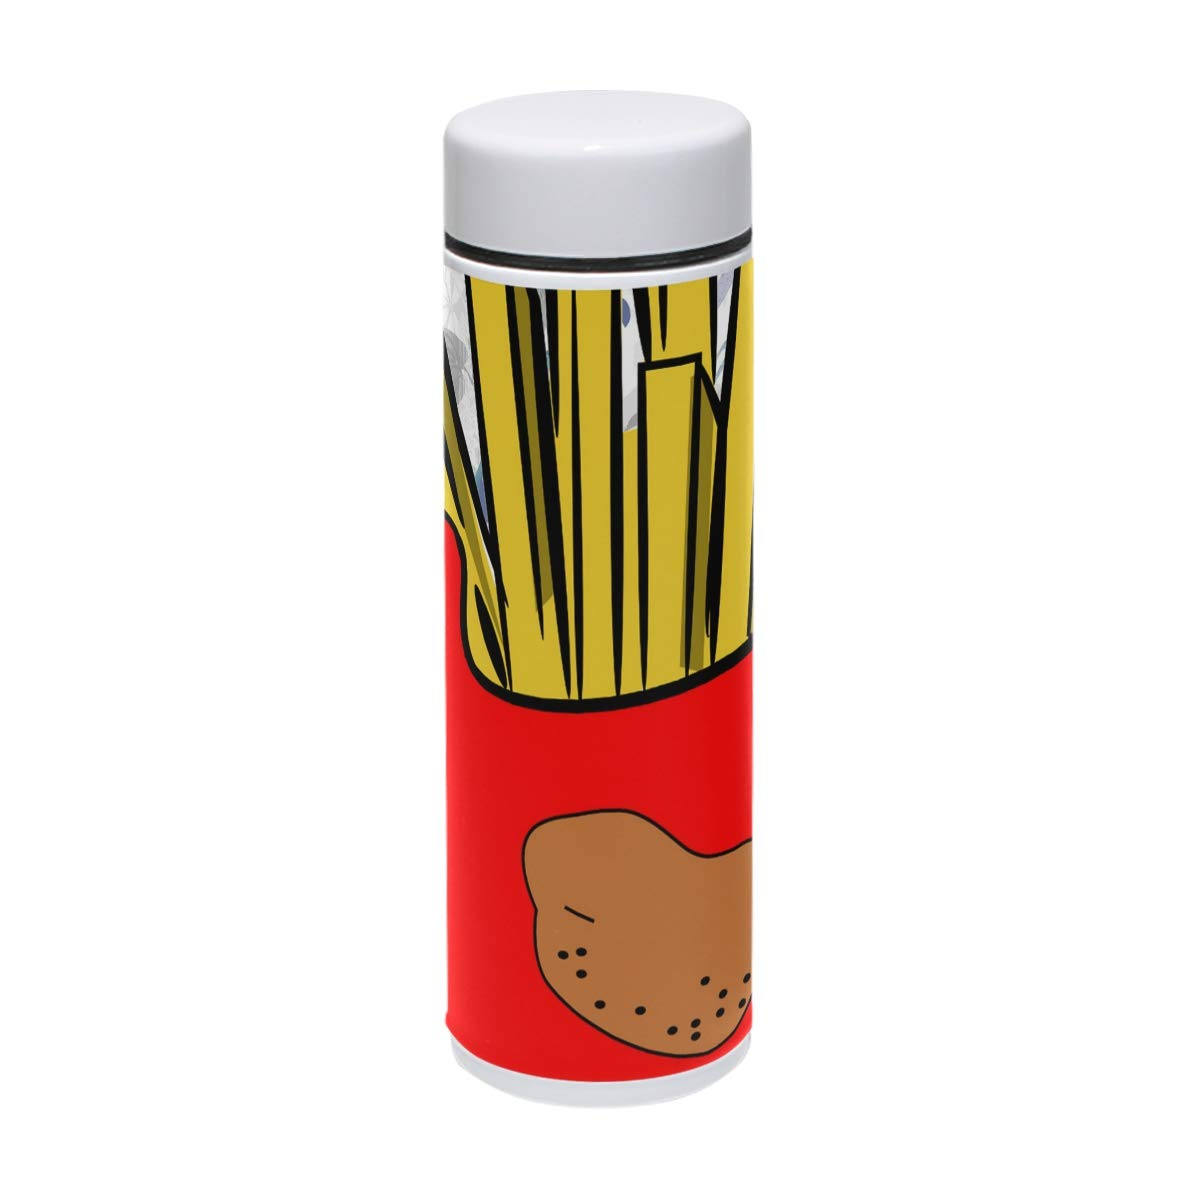 Fries clipart uses heat. Amazon com stainless steel